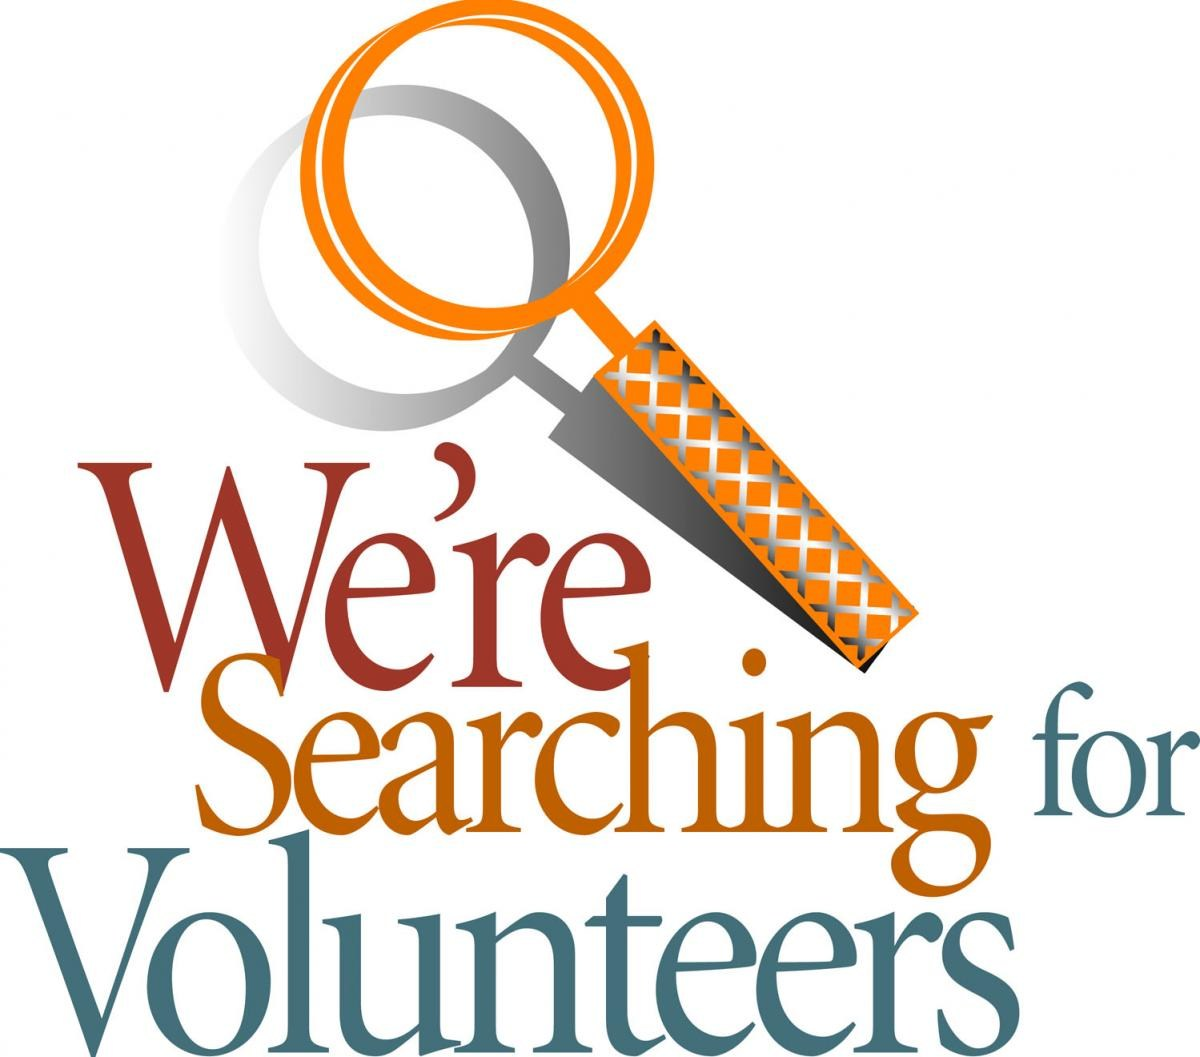 We are searching for Volunteers for Mondays 8 am - 12:30 pm!!